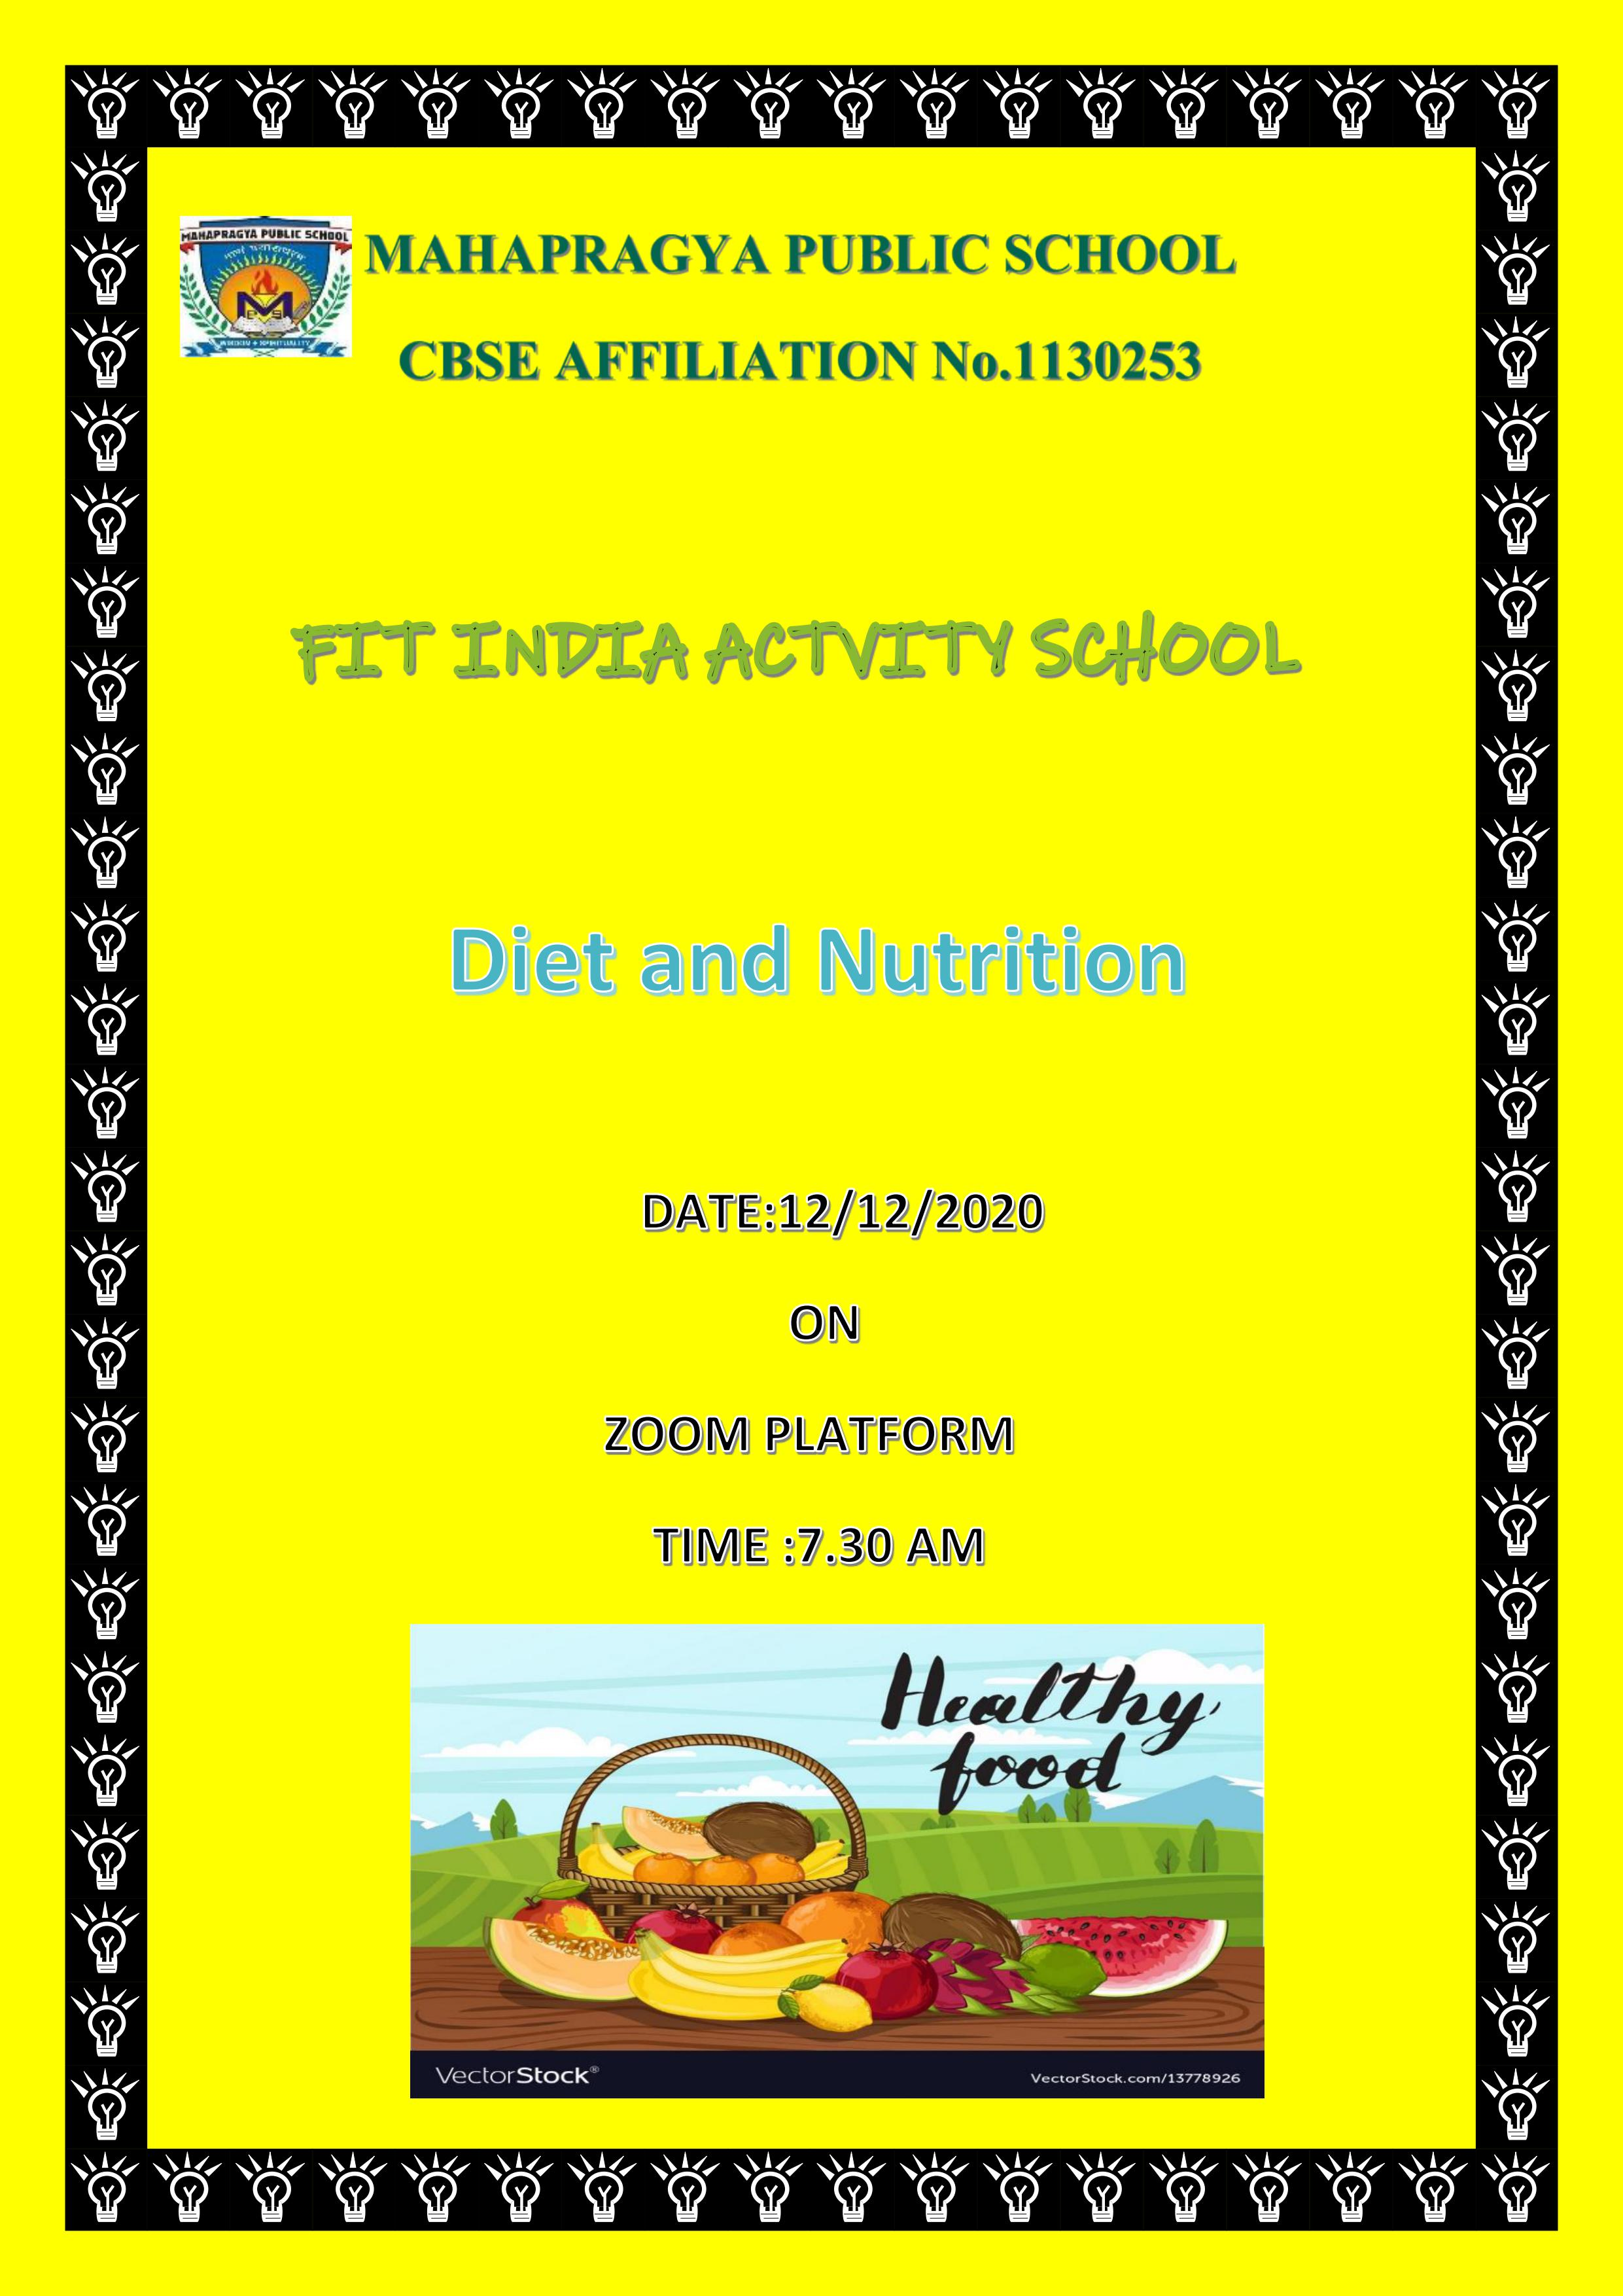 Virtual fit India – Diet and Nutrition